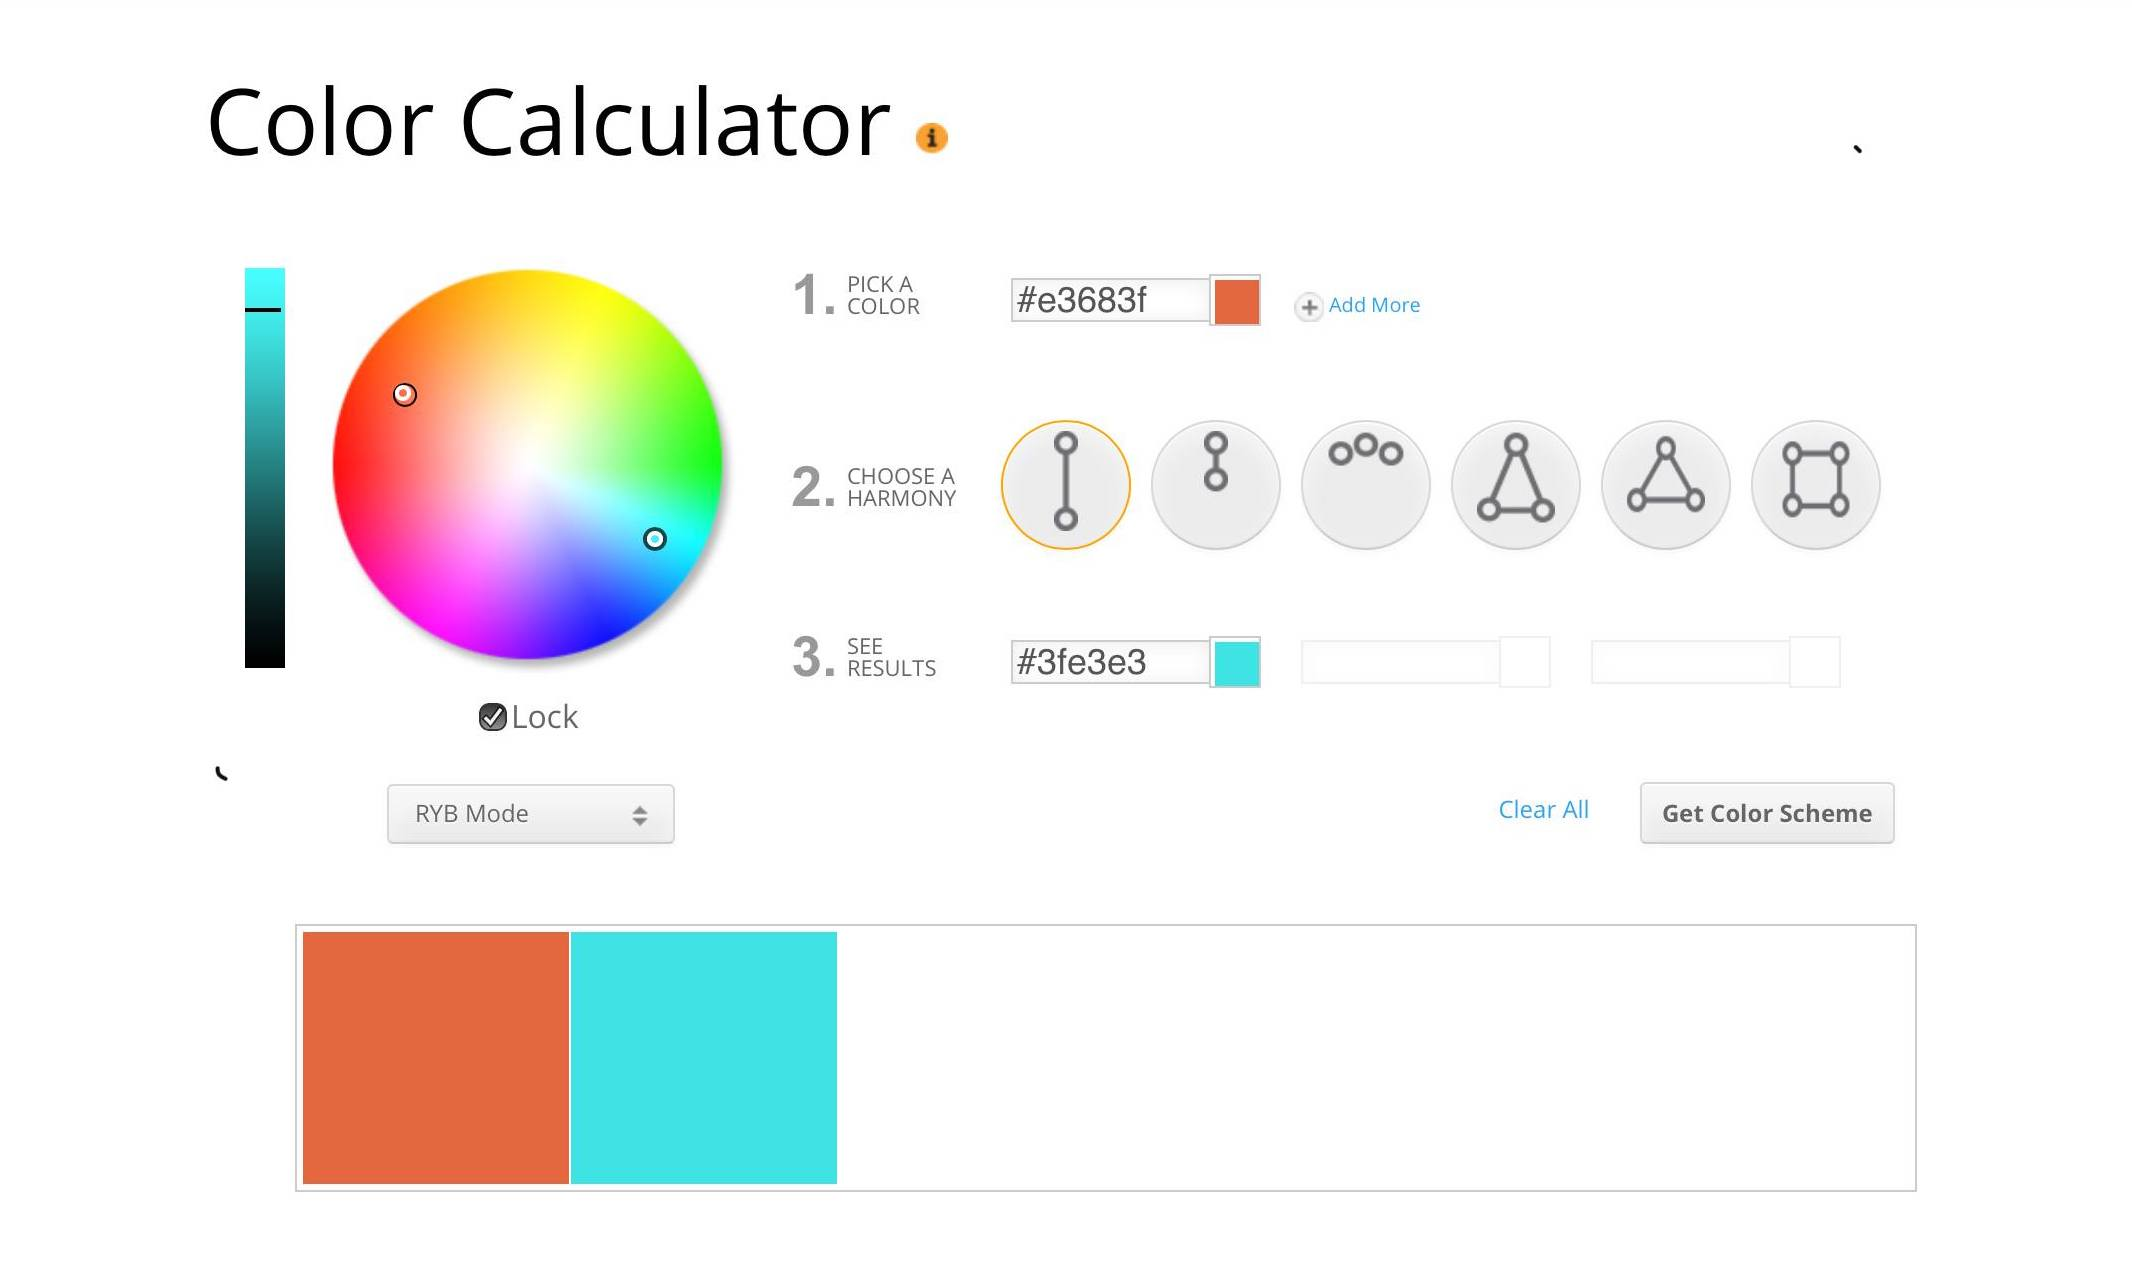 Color Calculator interface